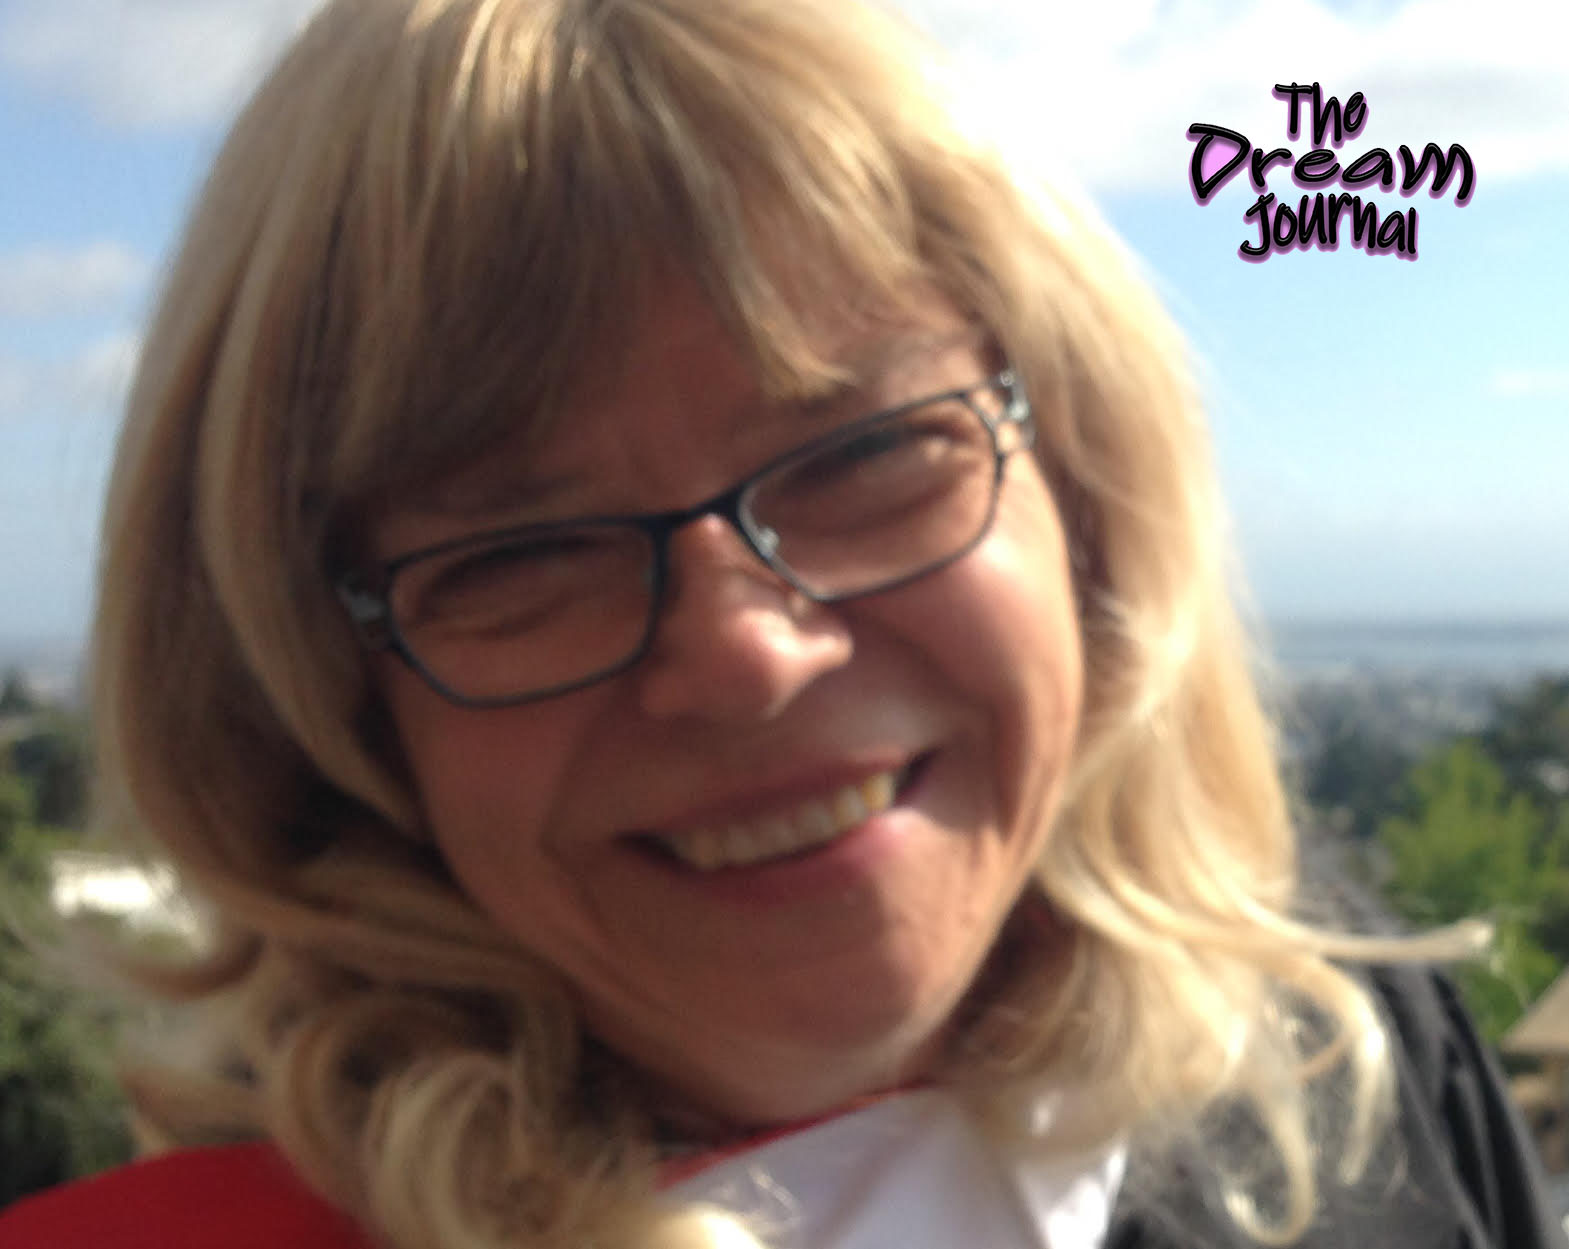 The Dream Journal: Sharon Reinbott, Re-Imagining Christianity